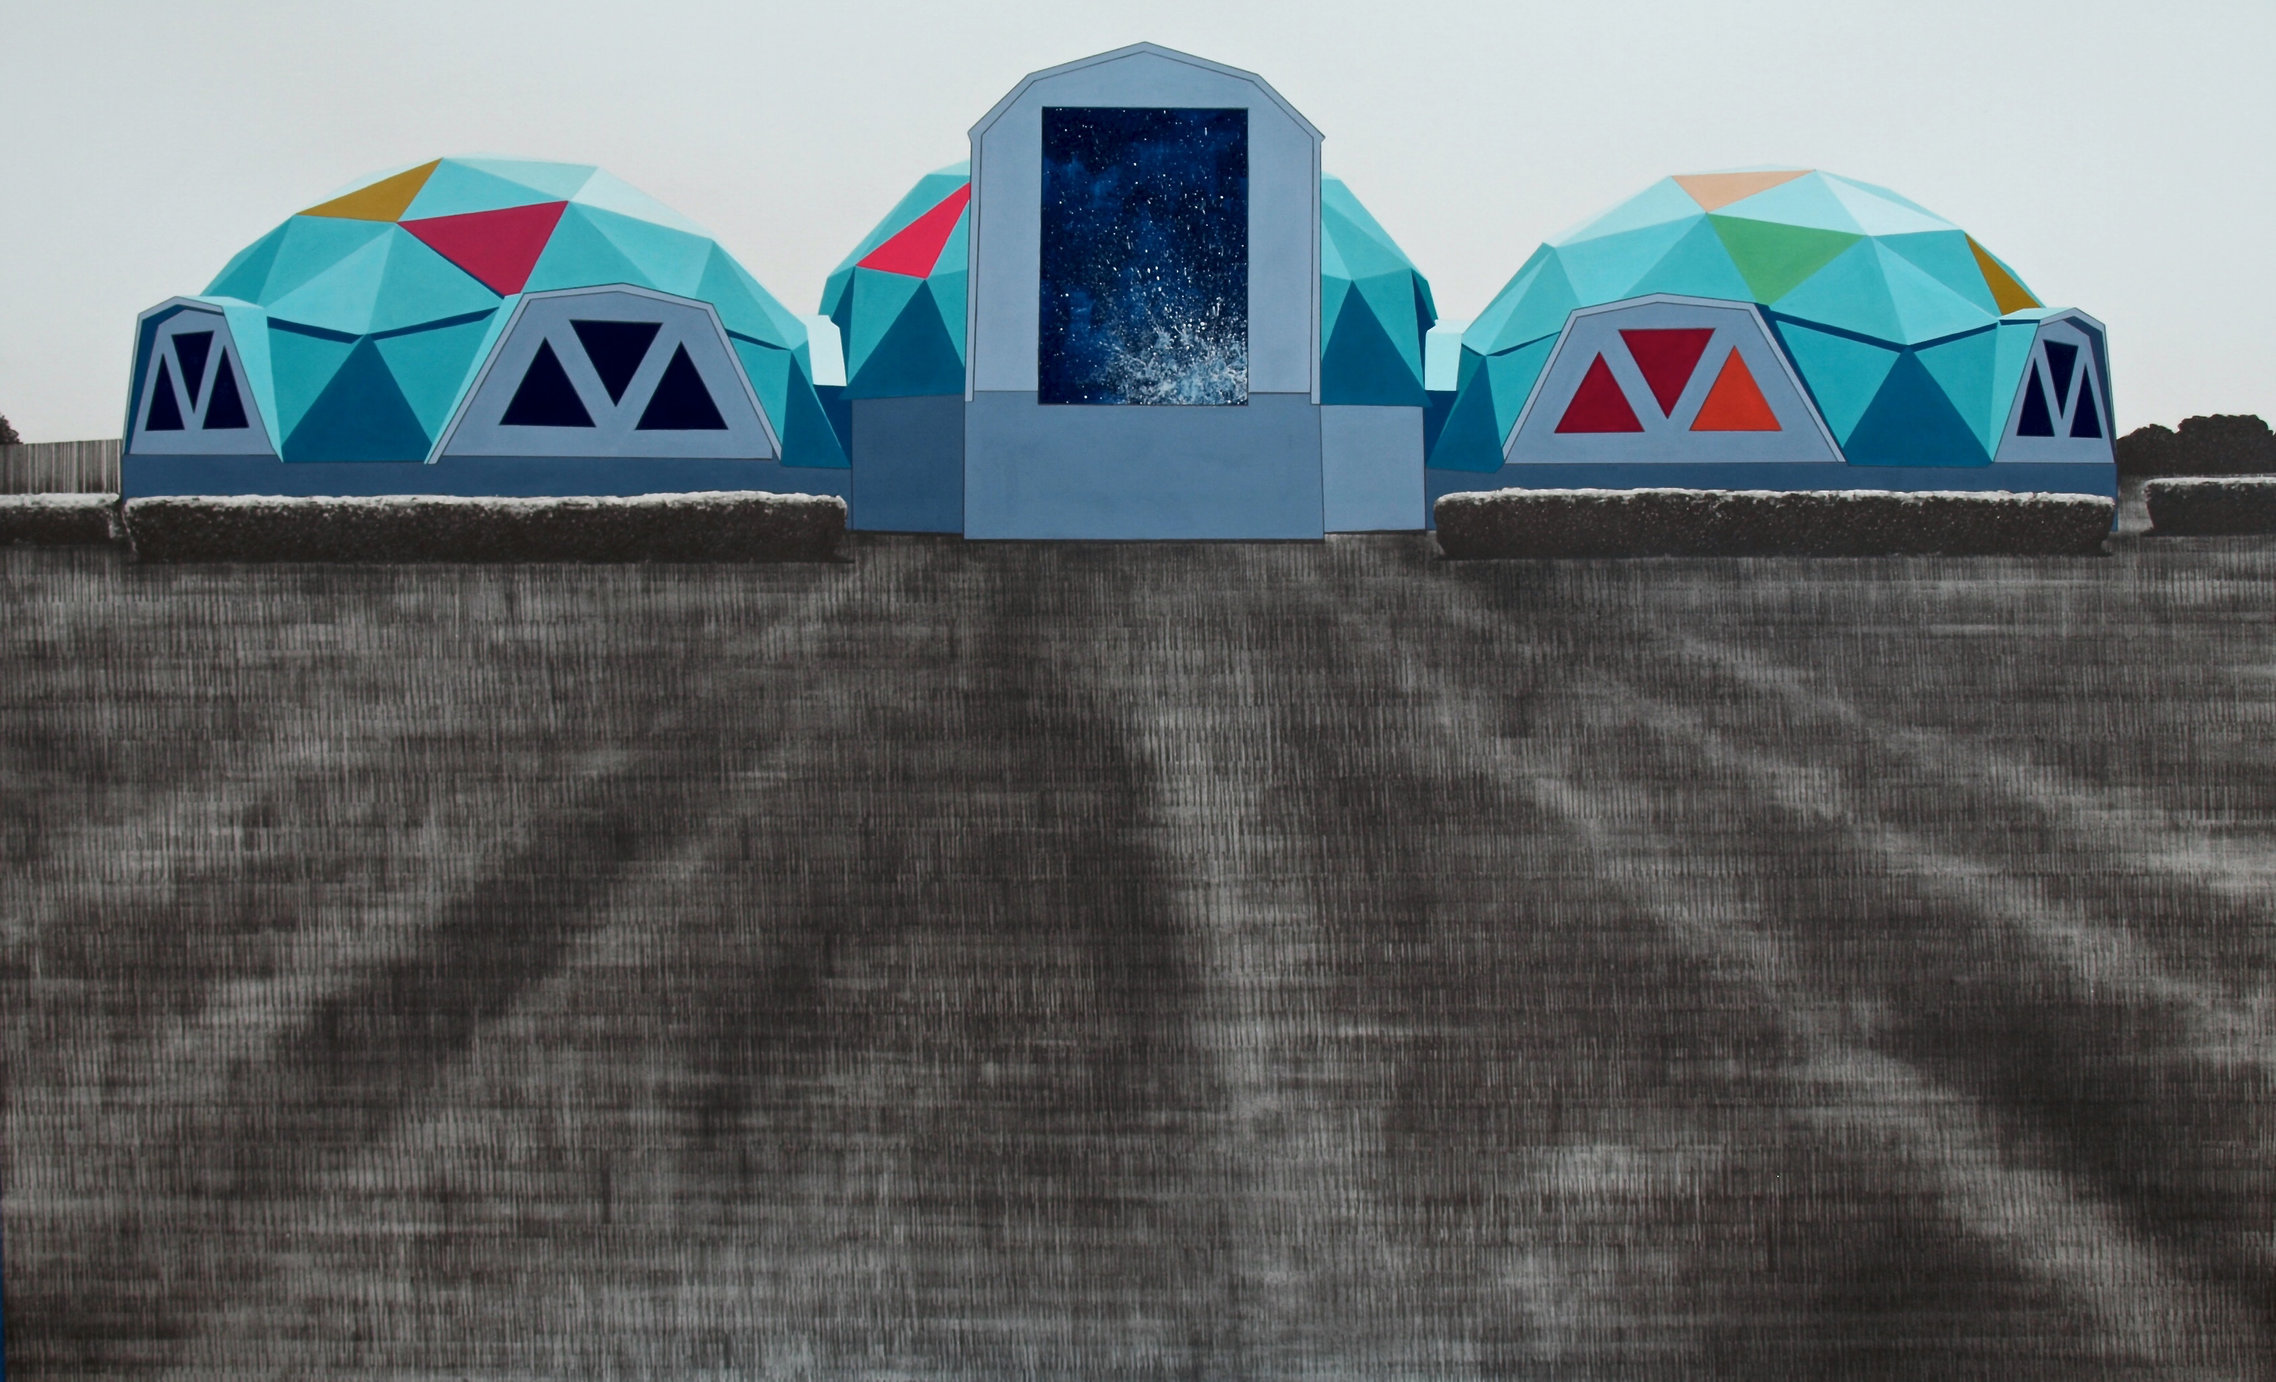 Waco Memorial, 2014, gouache and graphite on paper, 24 x 38""